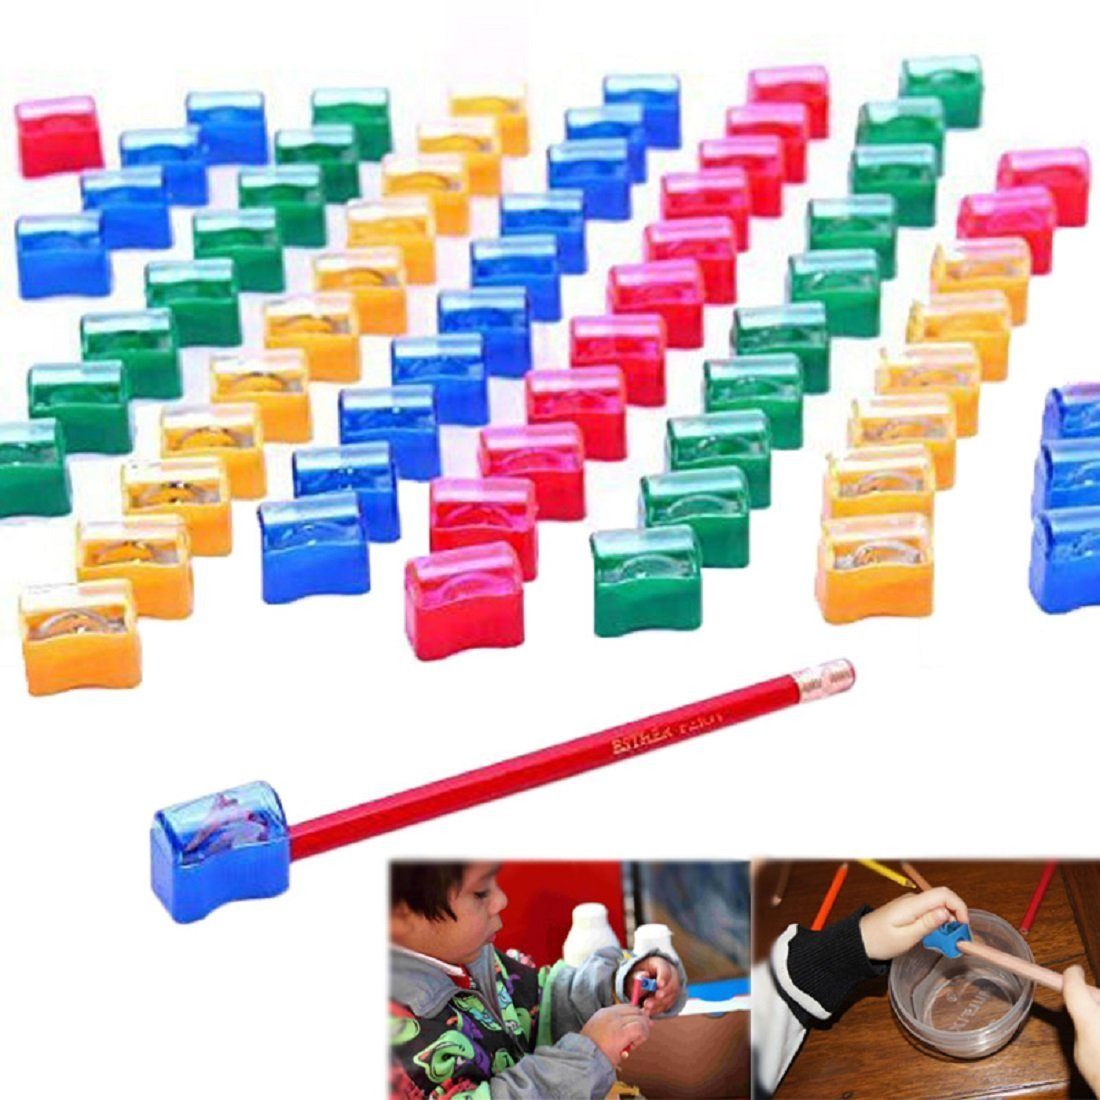 Pencil Sharpeners - Kids Assorted Plastic Pencil Sharpener Set for School and Home 72 Pcs | Multicolored Manual Pencil Sharpeners 72 Pack | Blue, Yellow, Red, Clear, Green, Purple